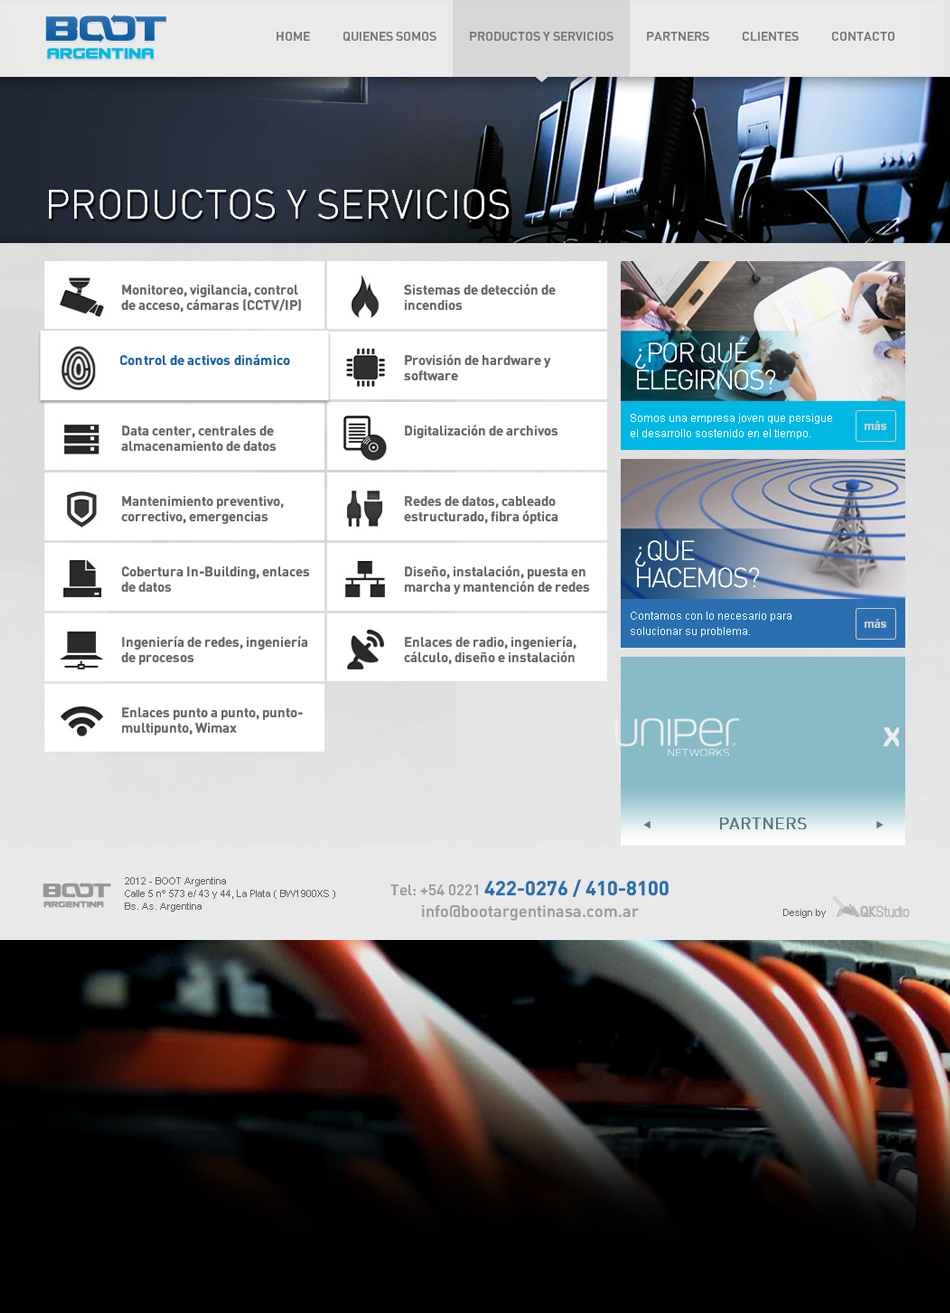 Boot Argentina Website Interior